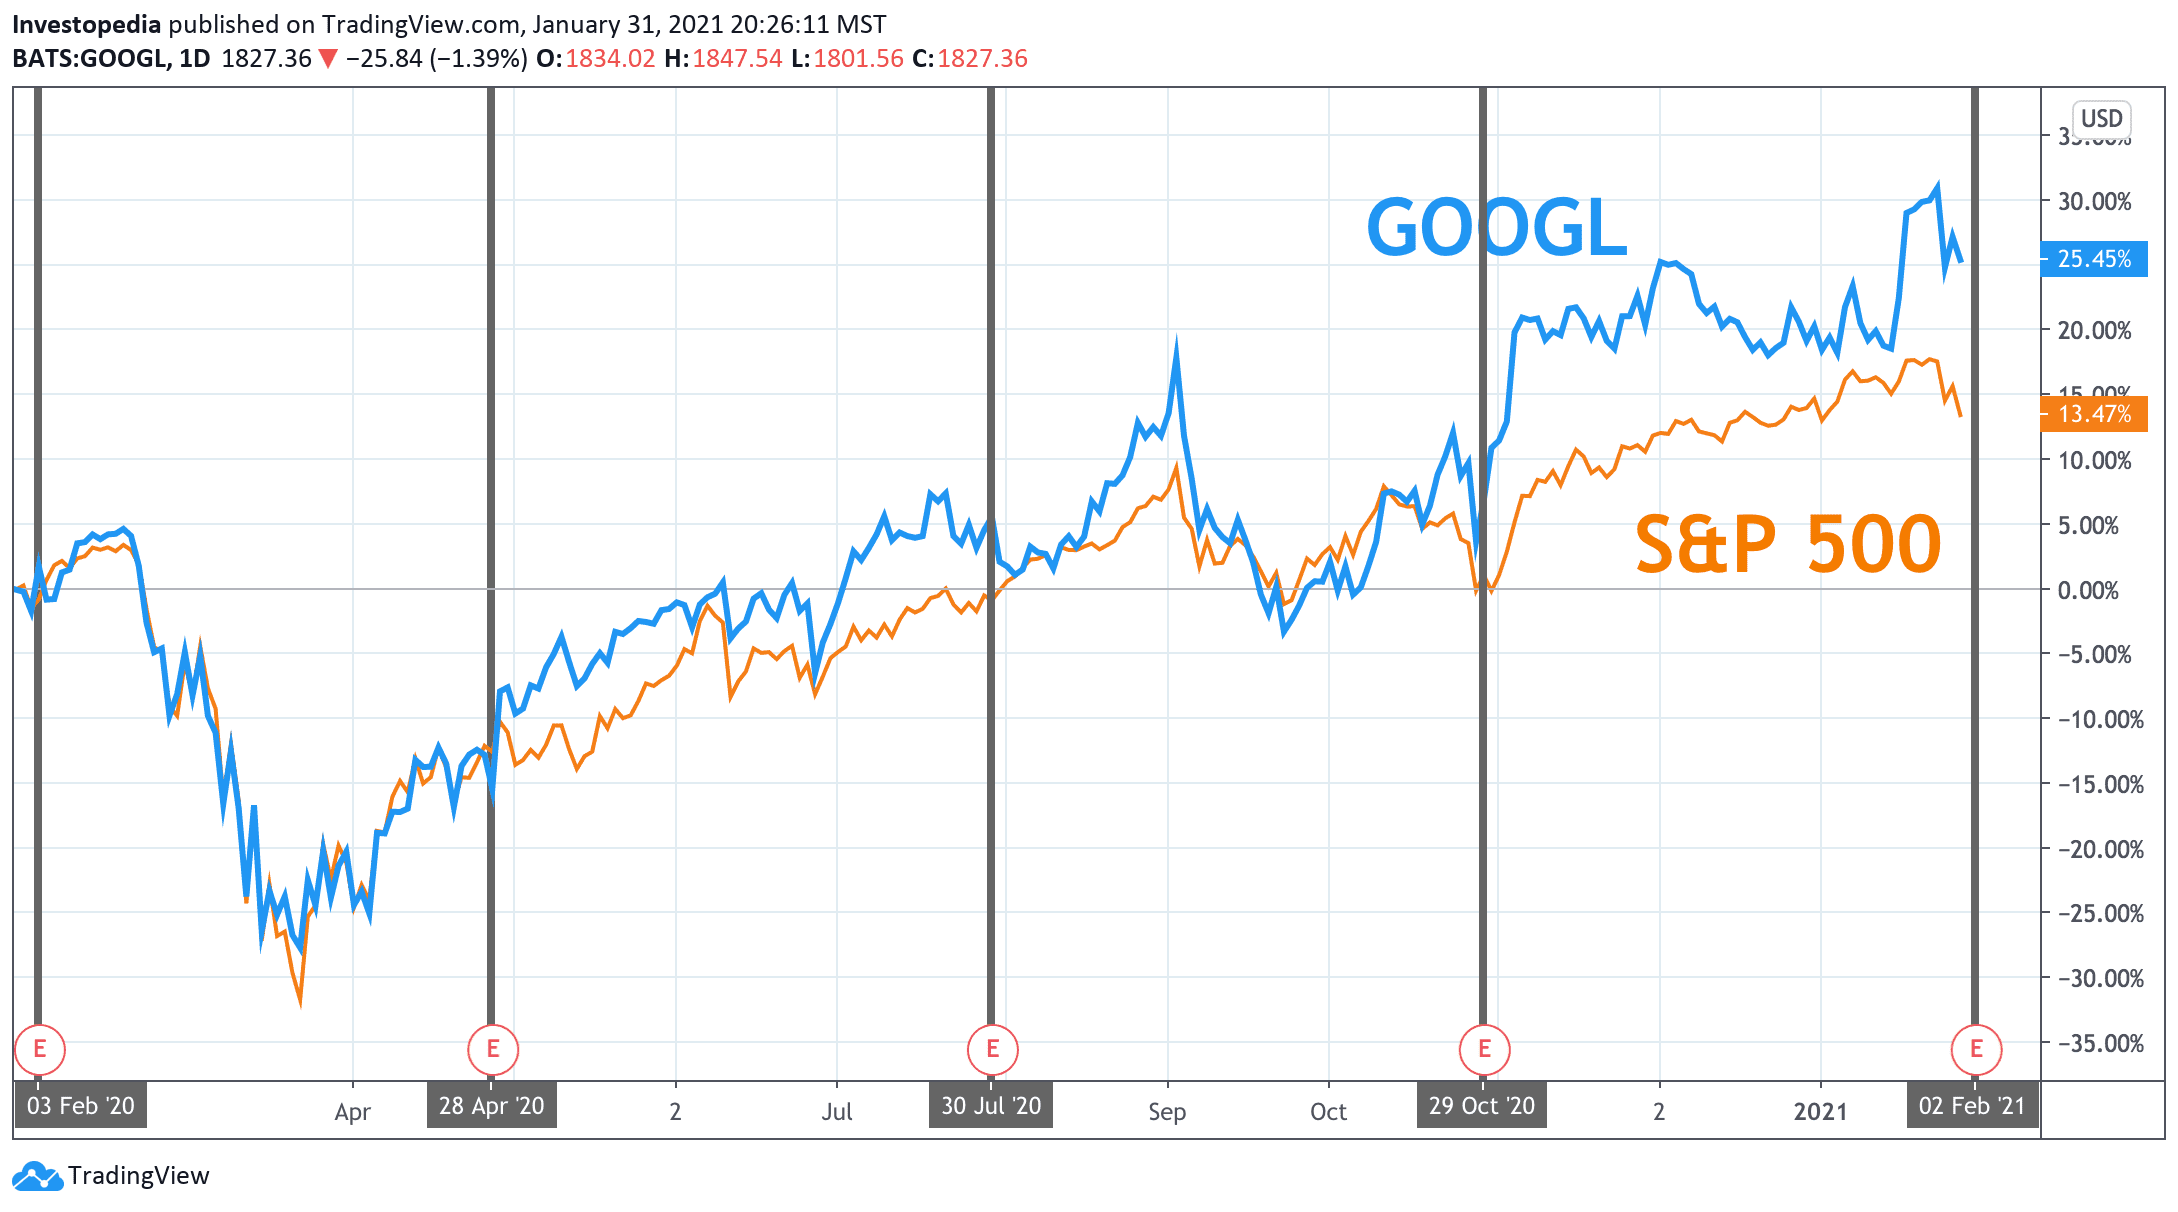 One Year Total Return for S&P 500 and Google